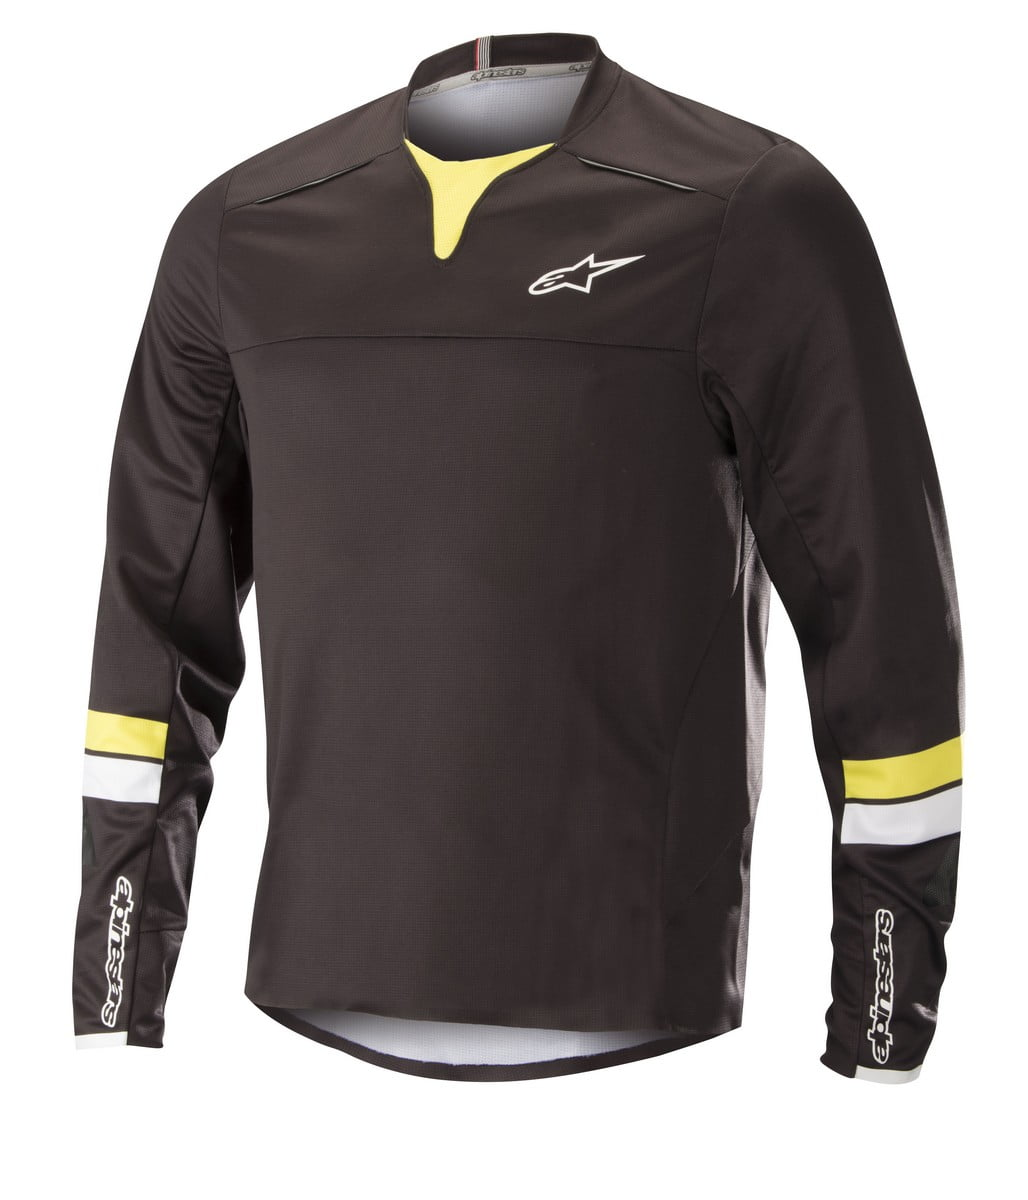 1766518_1047_DROP PRO LS Jersey_BlackAcidYellow